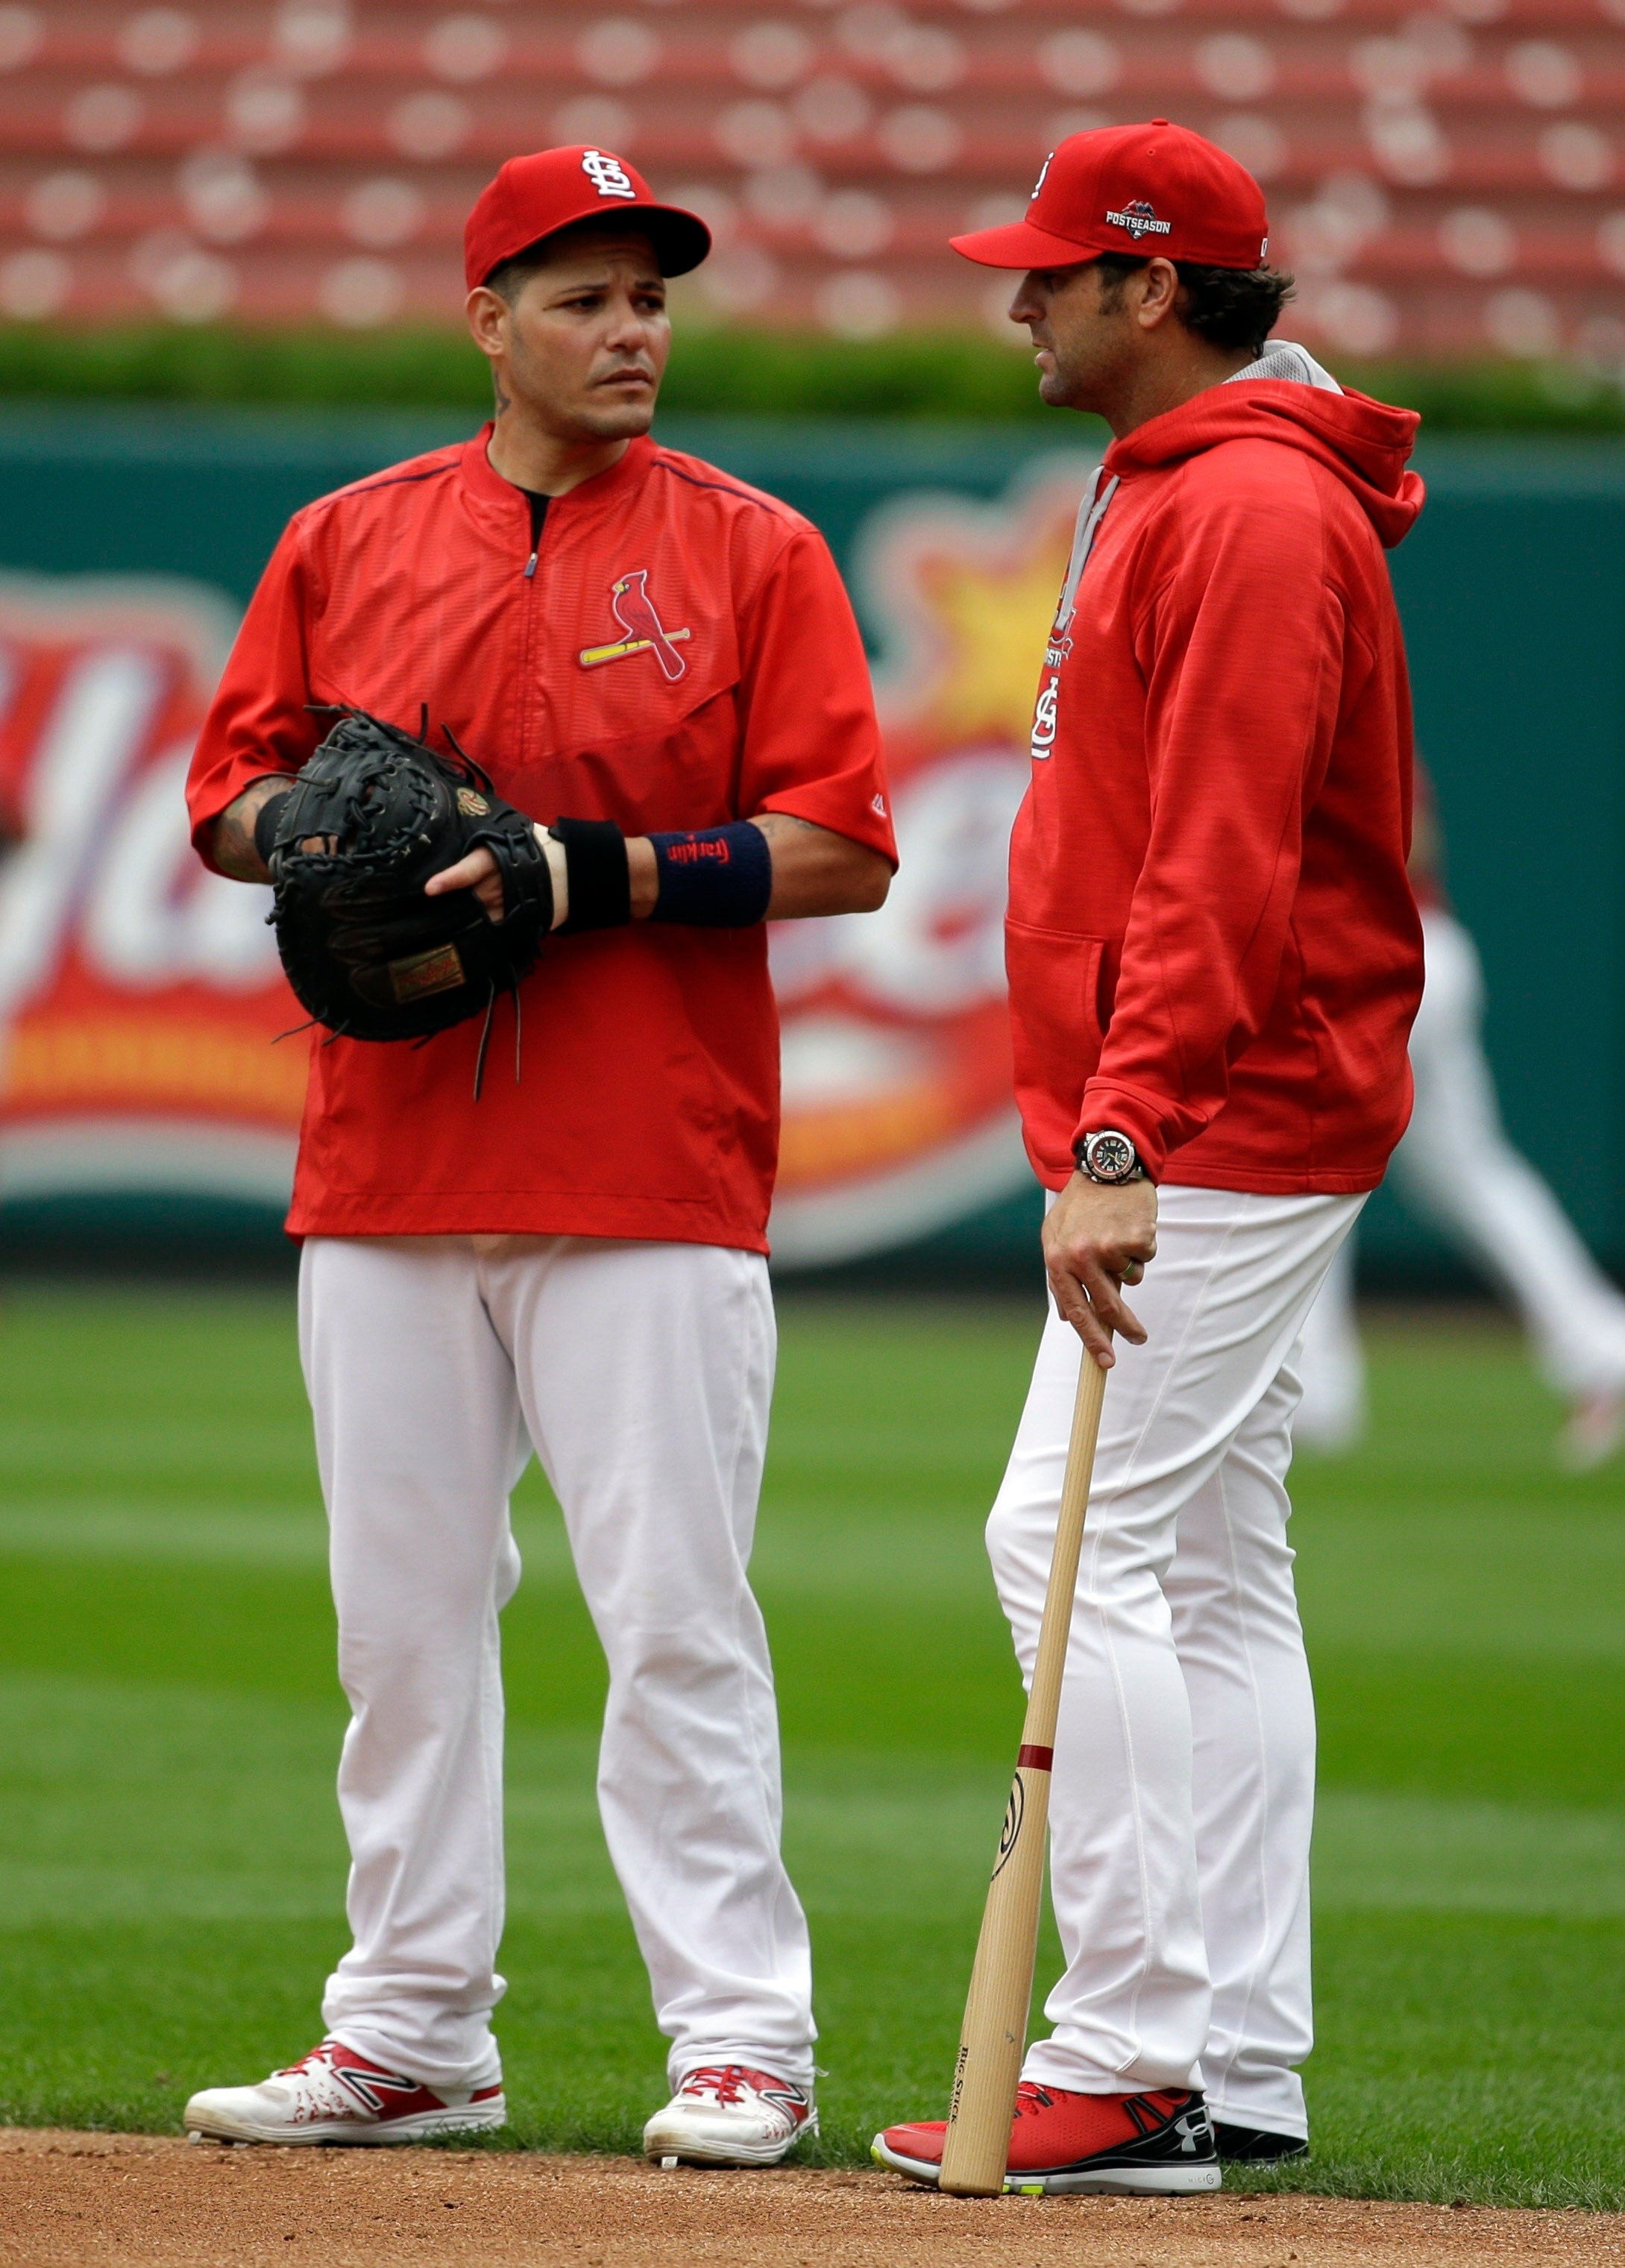 Yadier Molina talks with manager Mike Matheny during baseball practice on Wednesday, Oct. 7, 2015, in St. Louis, ahead of Game 1 of the NLDS. (AP Photo/Jeff Roberson)